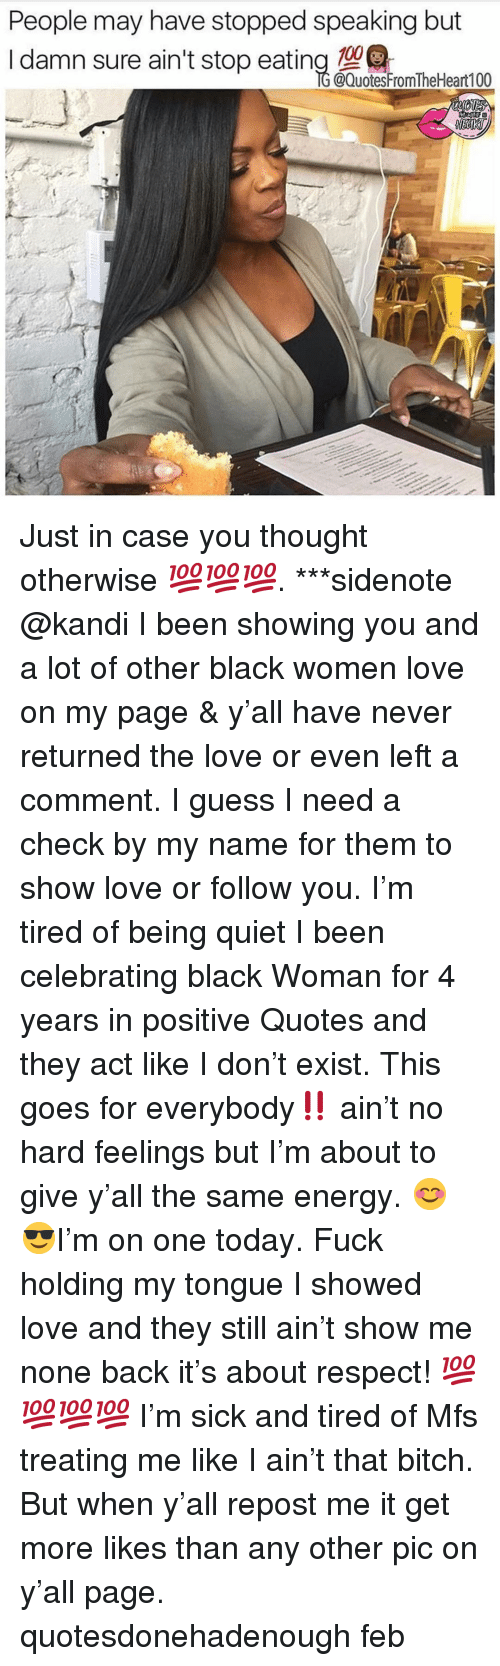 Bitch, Energy, and Love: People may have stopped speaking but  I damn sure ain't stop eating enrtoo  @QuotesFromTheHeart100 Just in case you thought otherwise 💯💯💯. ***sidenote @kandi I been showing you and a lot of other black women love on my page & y'all have never returned the love or even left a comment. I guess I need a check by my name for them to show love or follow you. I'm tired of being quiet I been celebrating black Woman for 4 years in positive Quotes and they act like I don't exist. This goes for everybody‼️ ain't no hard feelings but I'm about to give y'all the same energy. 😊😎I'm on one today. Fuck holding my tongue I showed love and they still ain't show me none back it's about respect! 💯💯💯💯 I'm sick and tired of Mfs treating me like I ain't that bitch. But when y'all repost me it get more likes than any other pic on y'all page. quotesdonehadenough feb